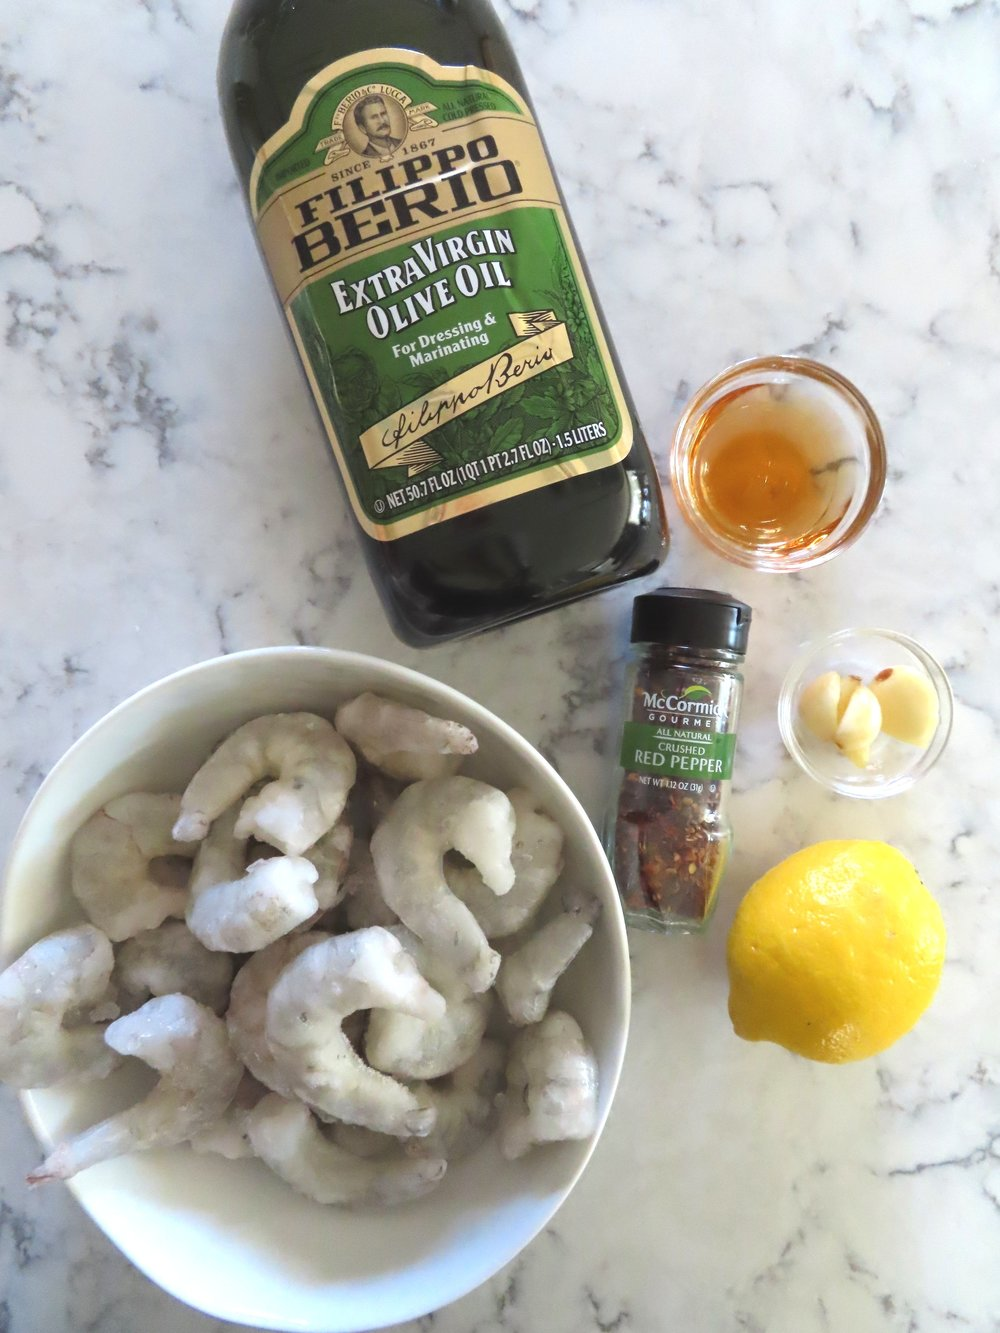 Ingredients - Olive oil, sherry, lemon, garlic, crushed red pepper and shrimp. Typically I would use fresh shrimp but I had these in the freezer and thought I would use them up.